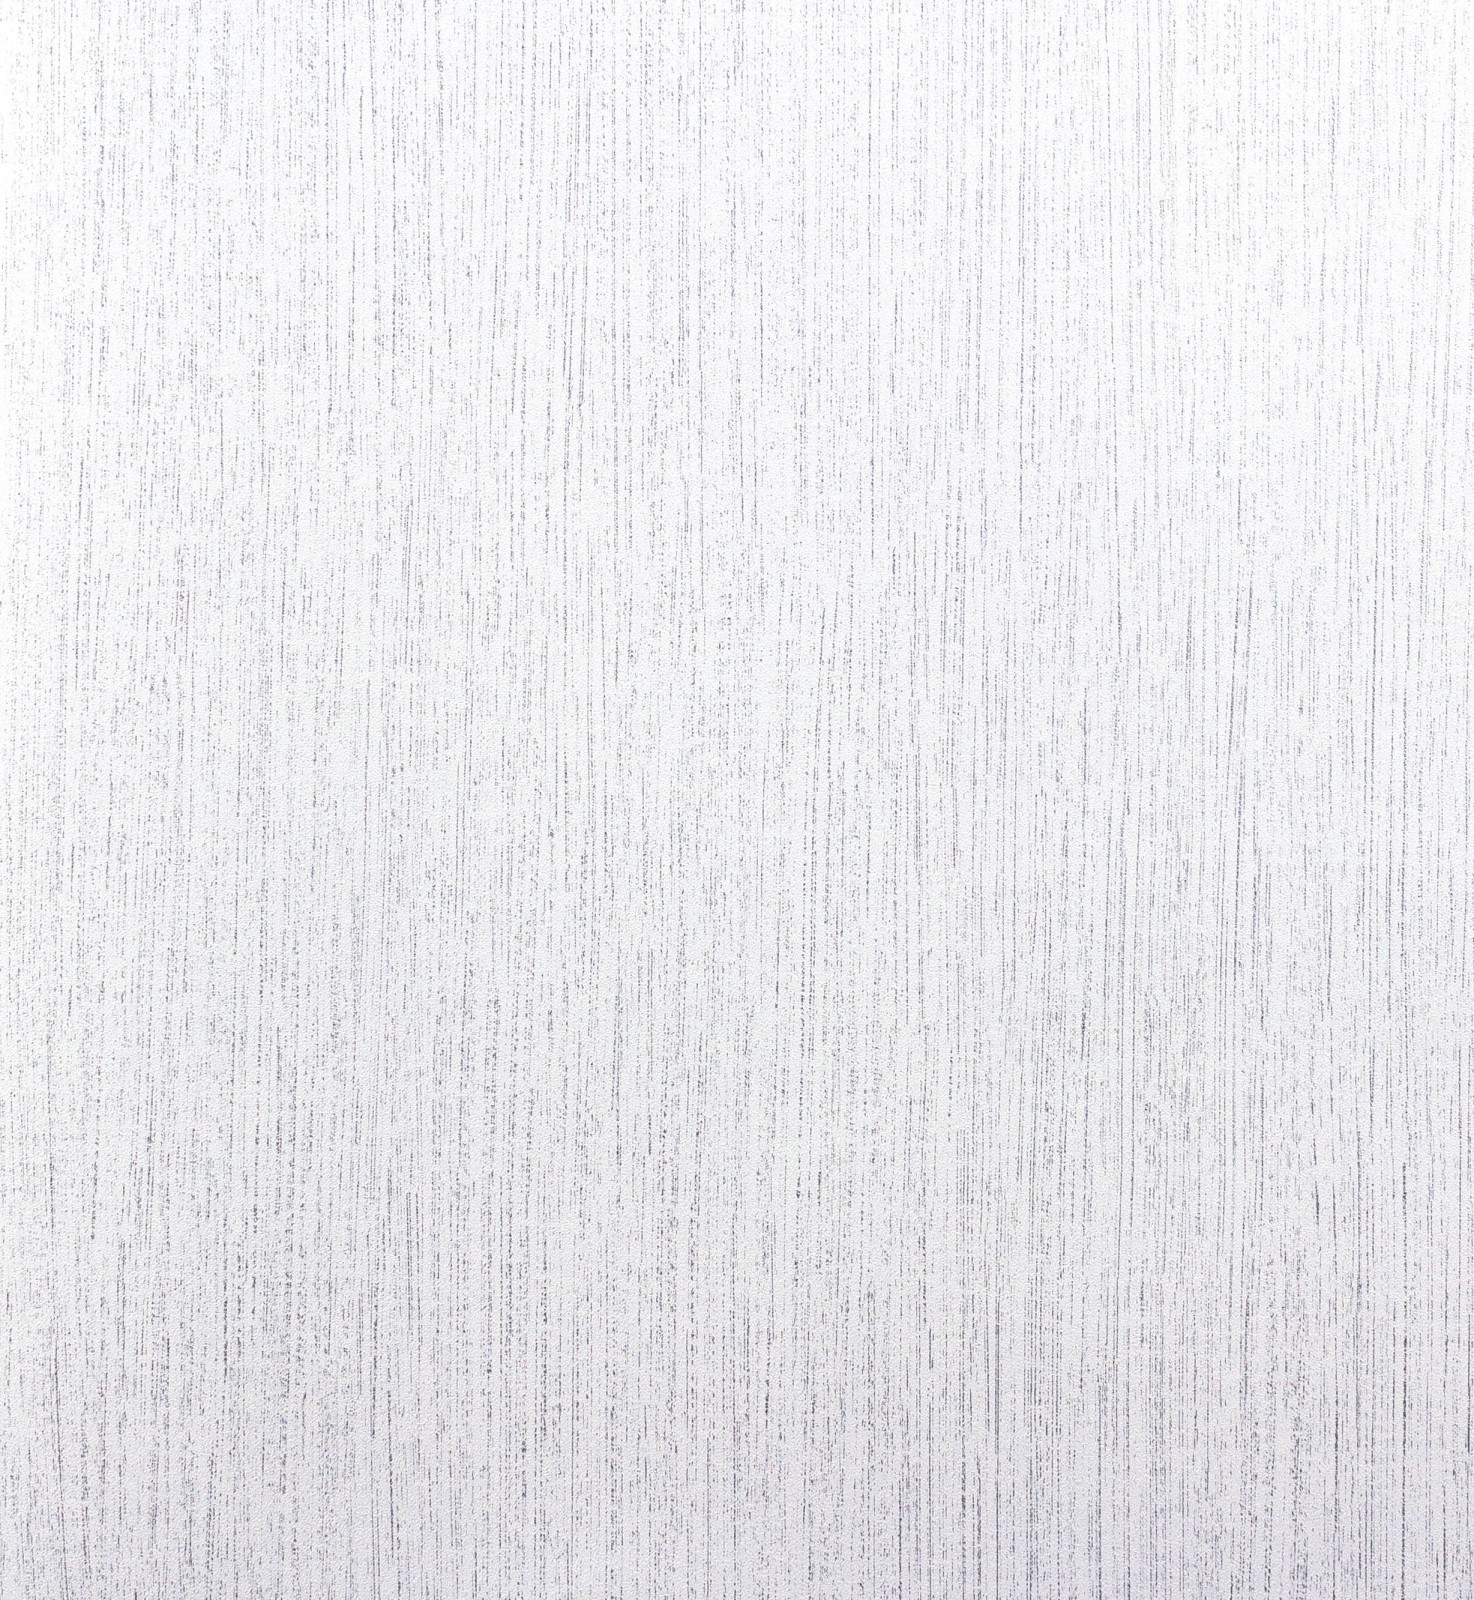 Plain White Textured Wallpaper Full Hd Is Cool Wallpapers